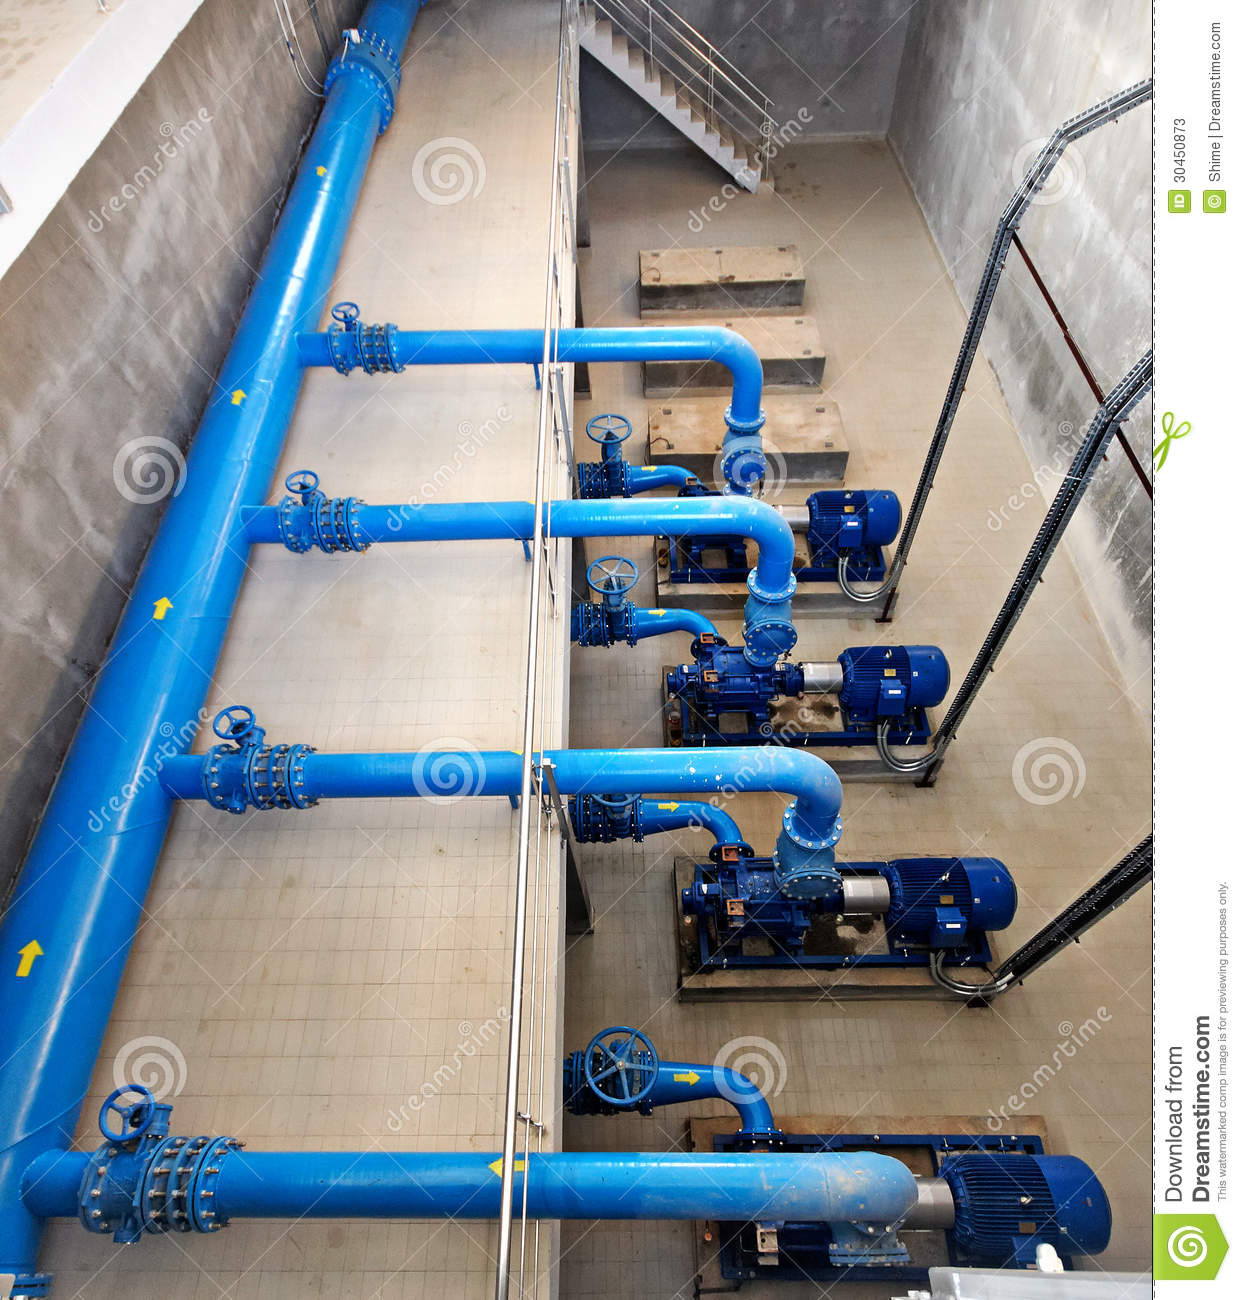 Pumping Station Stock Photos Image 30450873